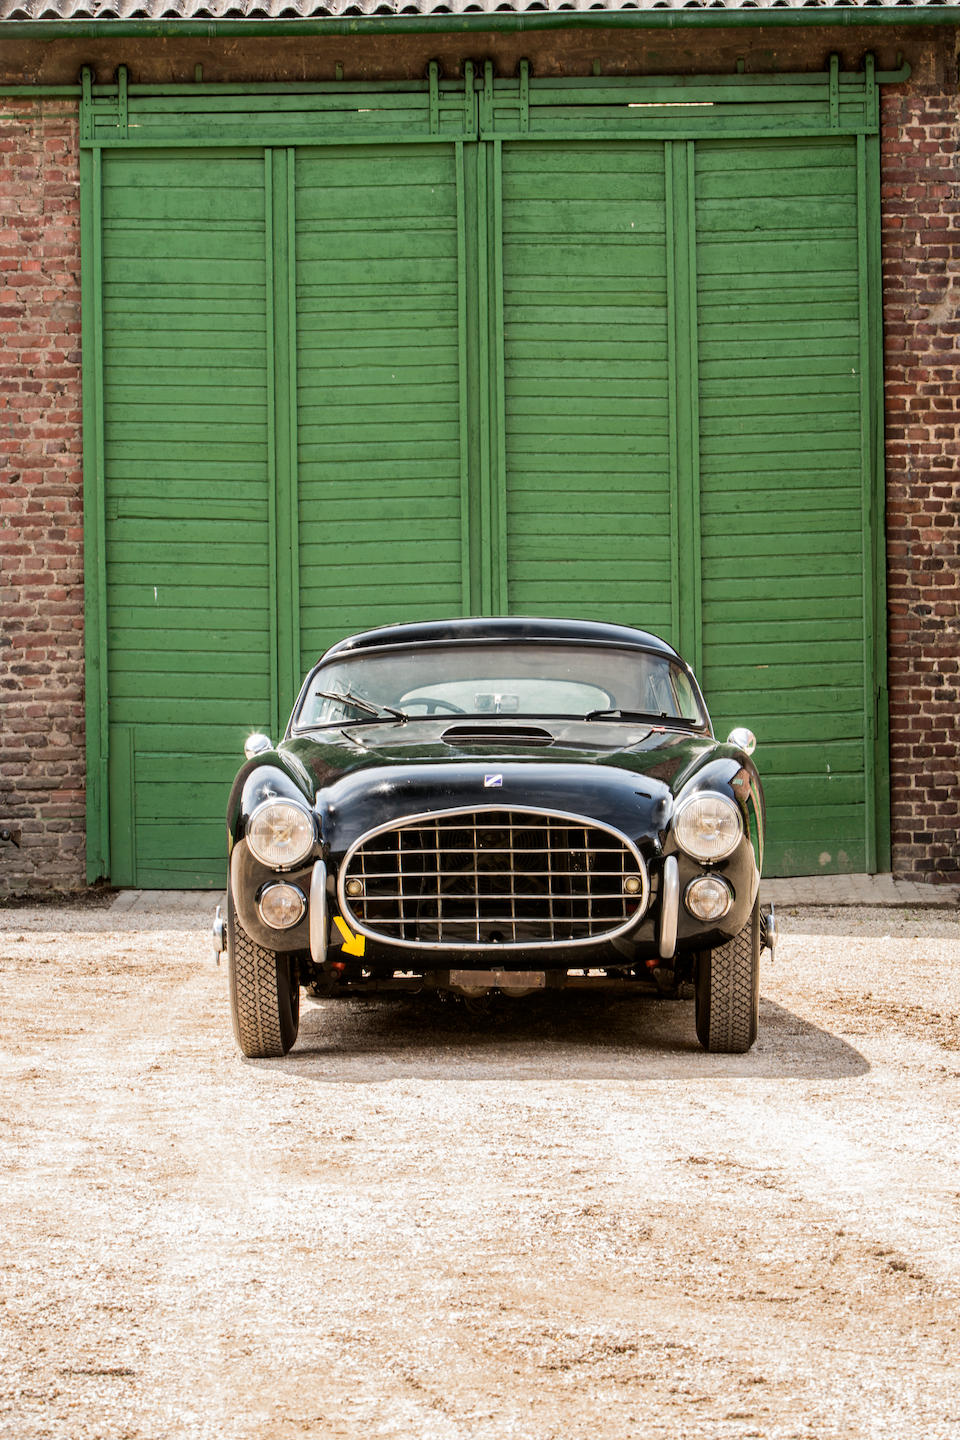 <i>Brussels Auto Show - 1953 24 Hours of Spa & Liège-Rome-Liège Rally</i><br /><b>1948 TALBOT-LAGO  T26 GRAND SPORT COUPE </b><br />  Chassis no. 110106 <br />Engine no. 103